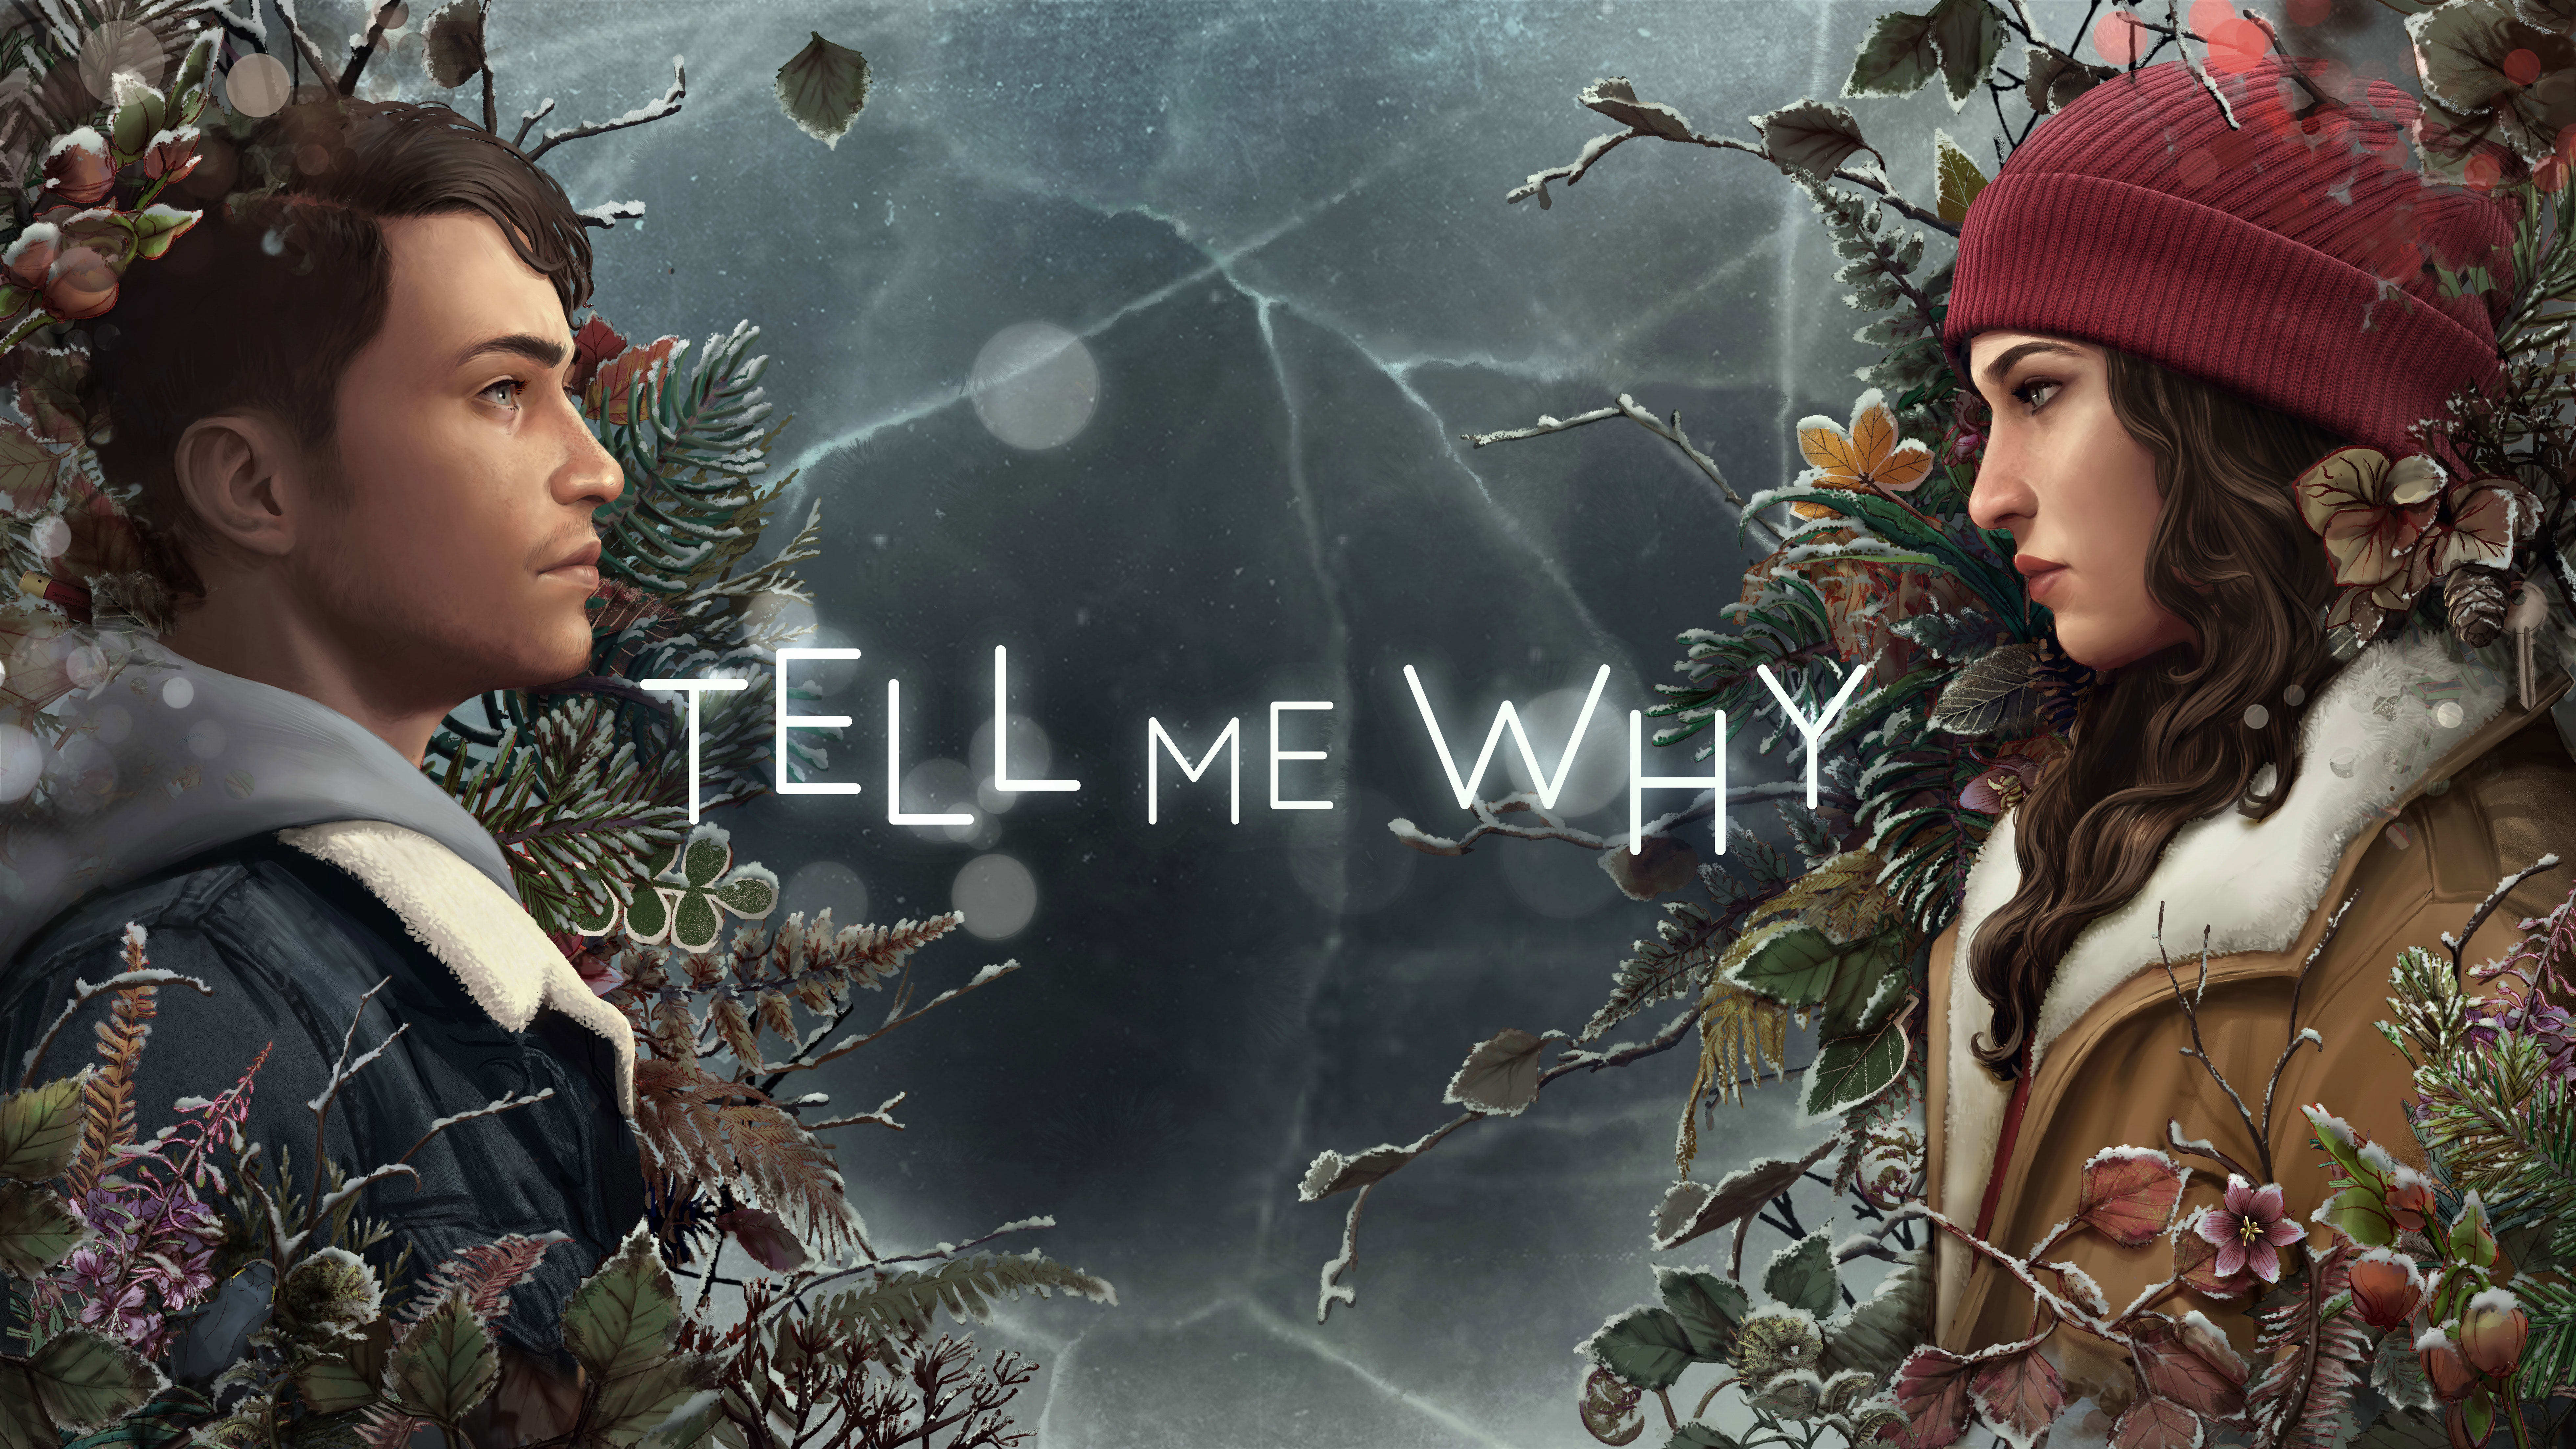 Tell Me Why 2020 Game Wallpaper Hd Games 4k Wallpapers Images Photos And Background